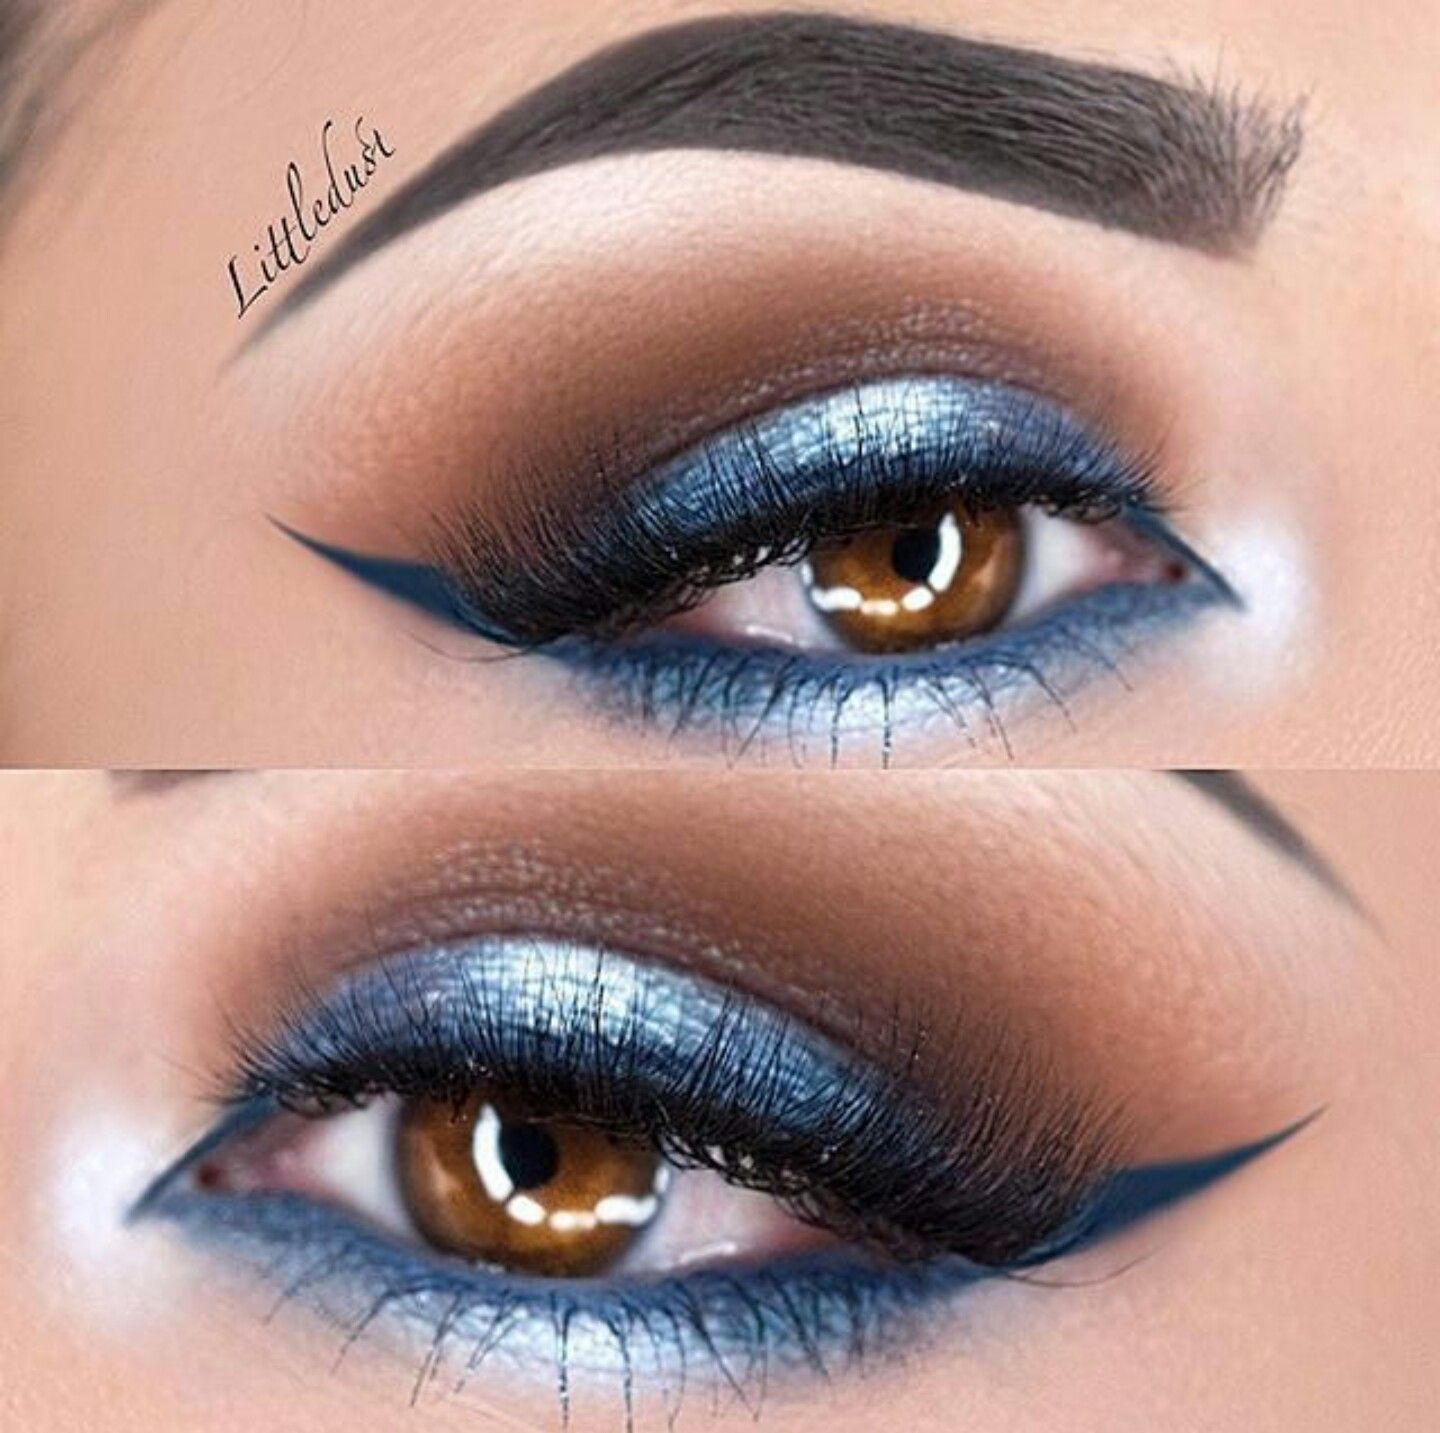 Deep blue, midnight blue, silver, halo eye makeup look